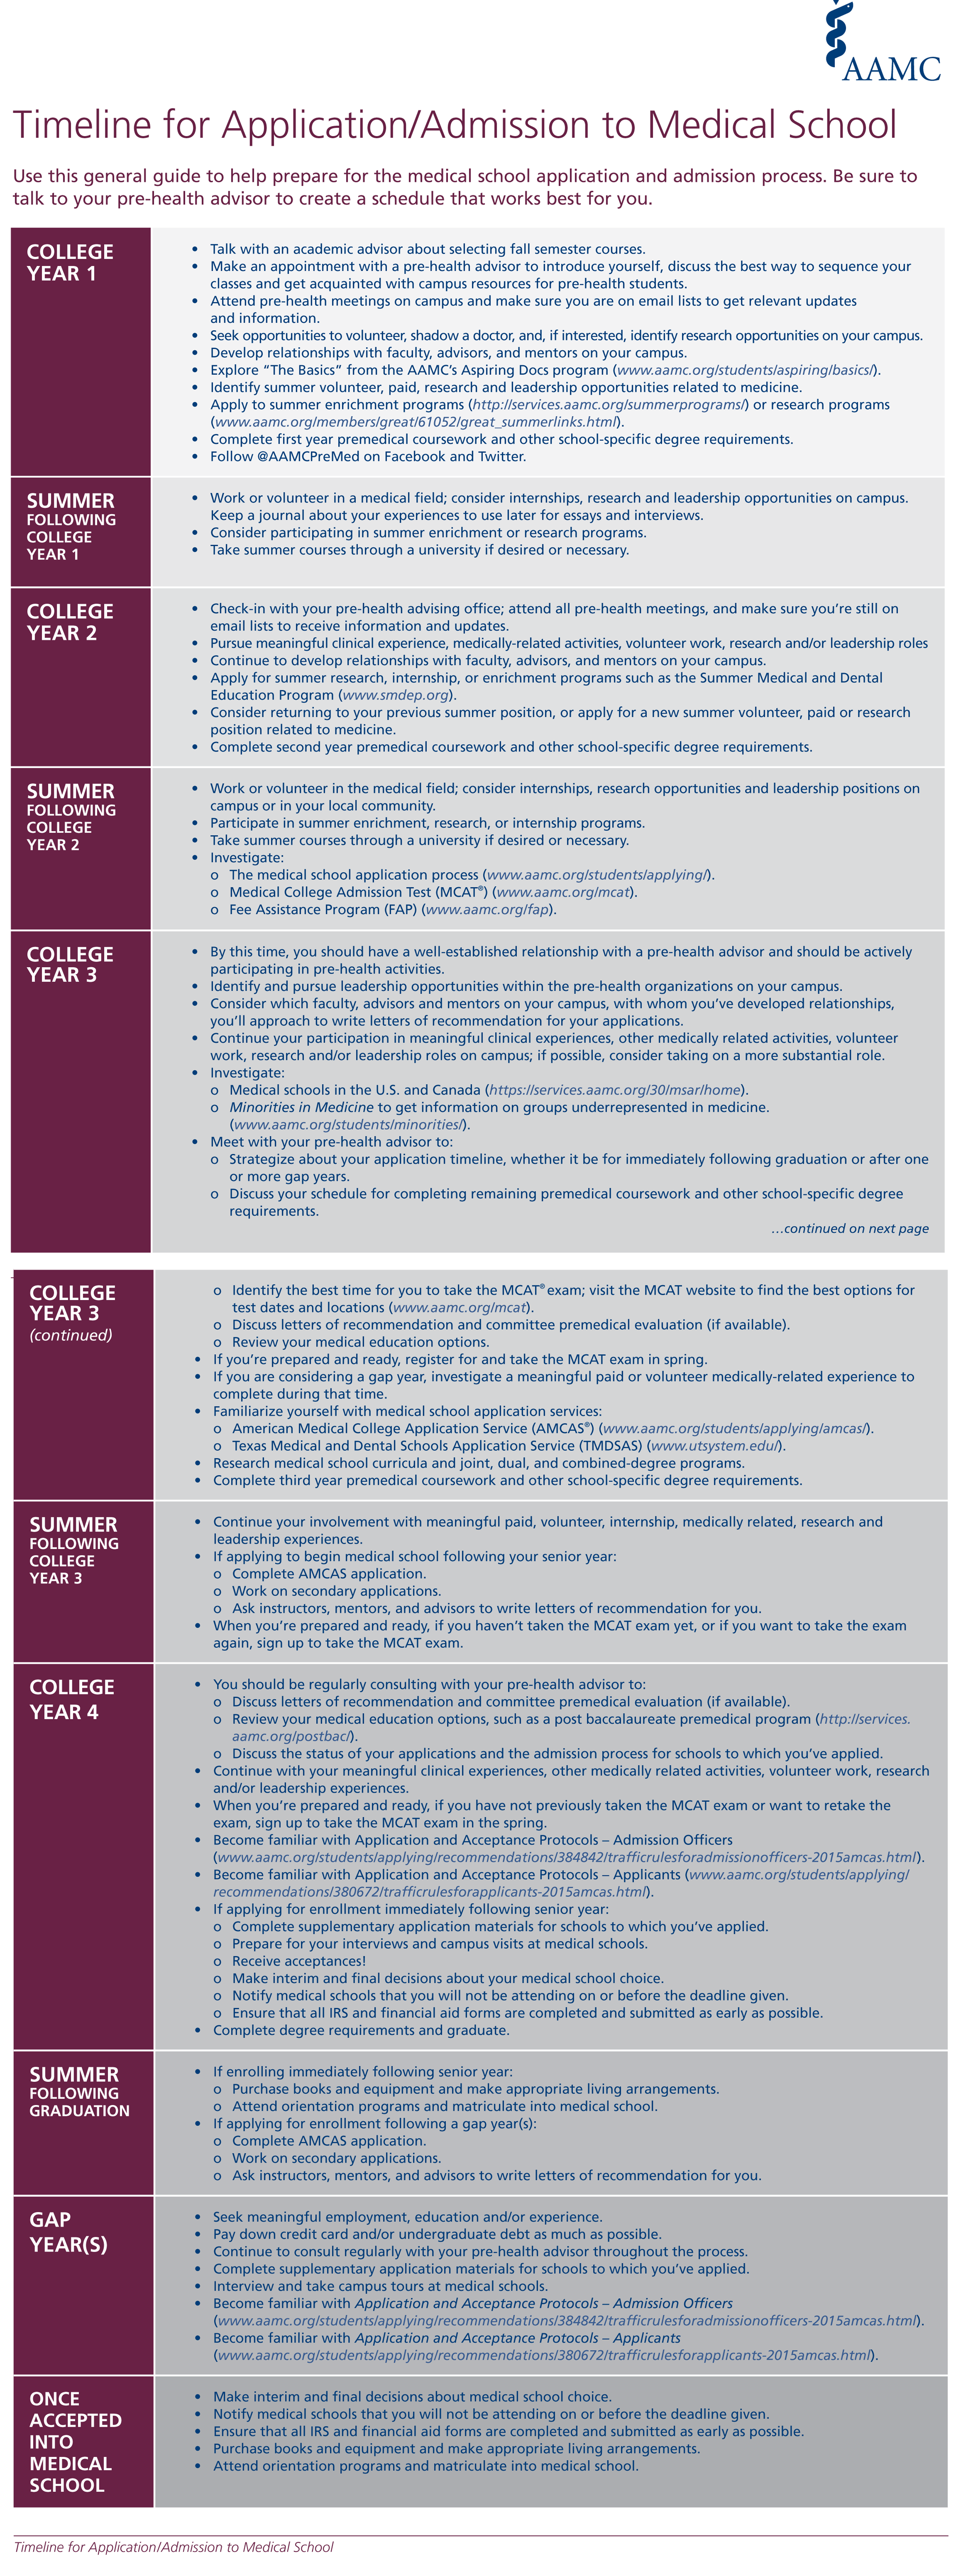 The medical school application timeline by AAMC recommends learning more about t… 2e026b31244e845a19429f031c50e1d9